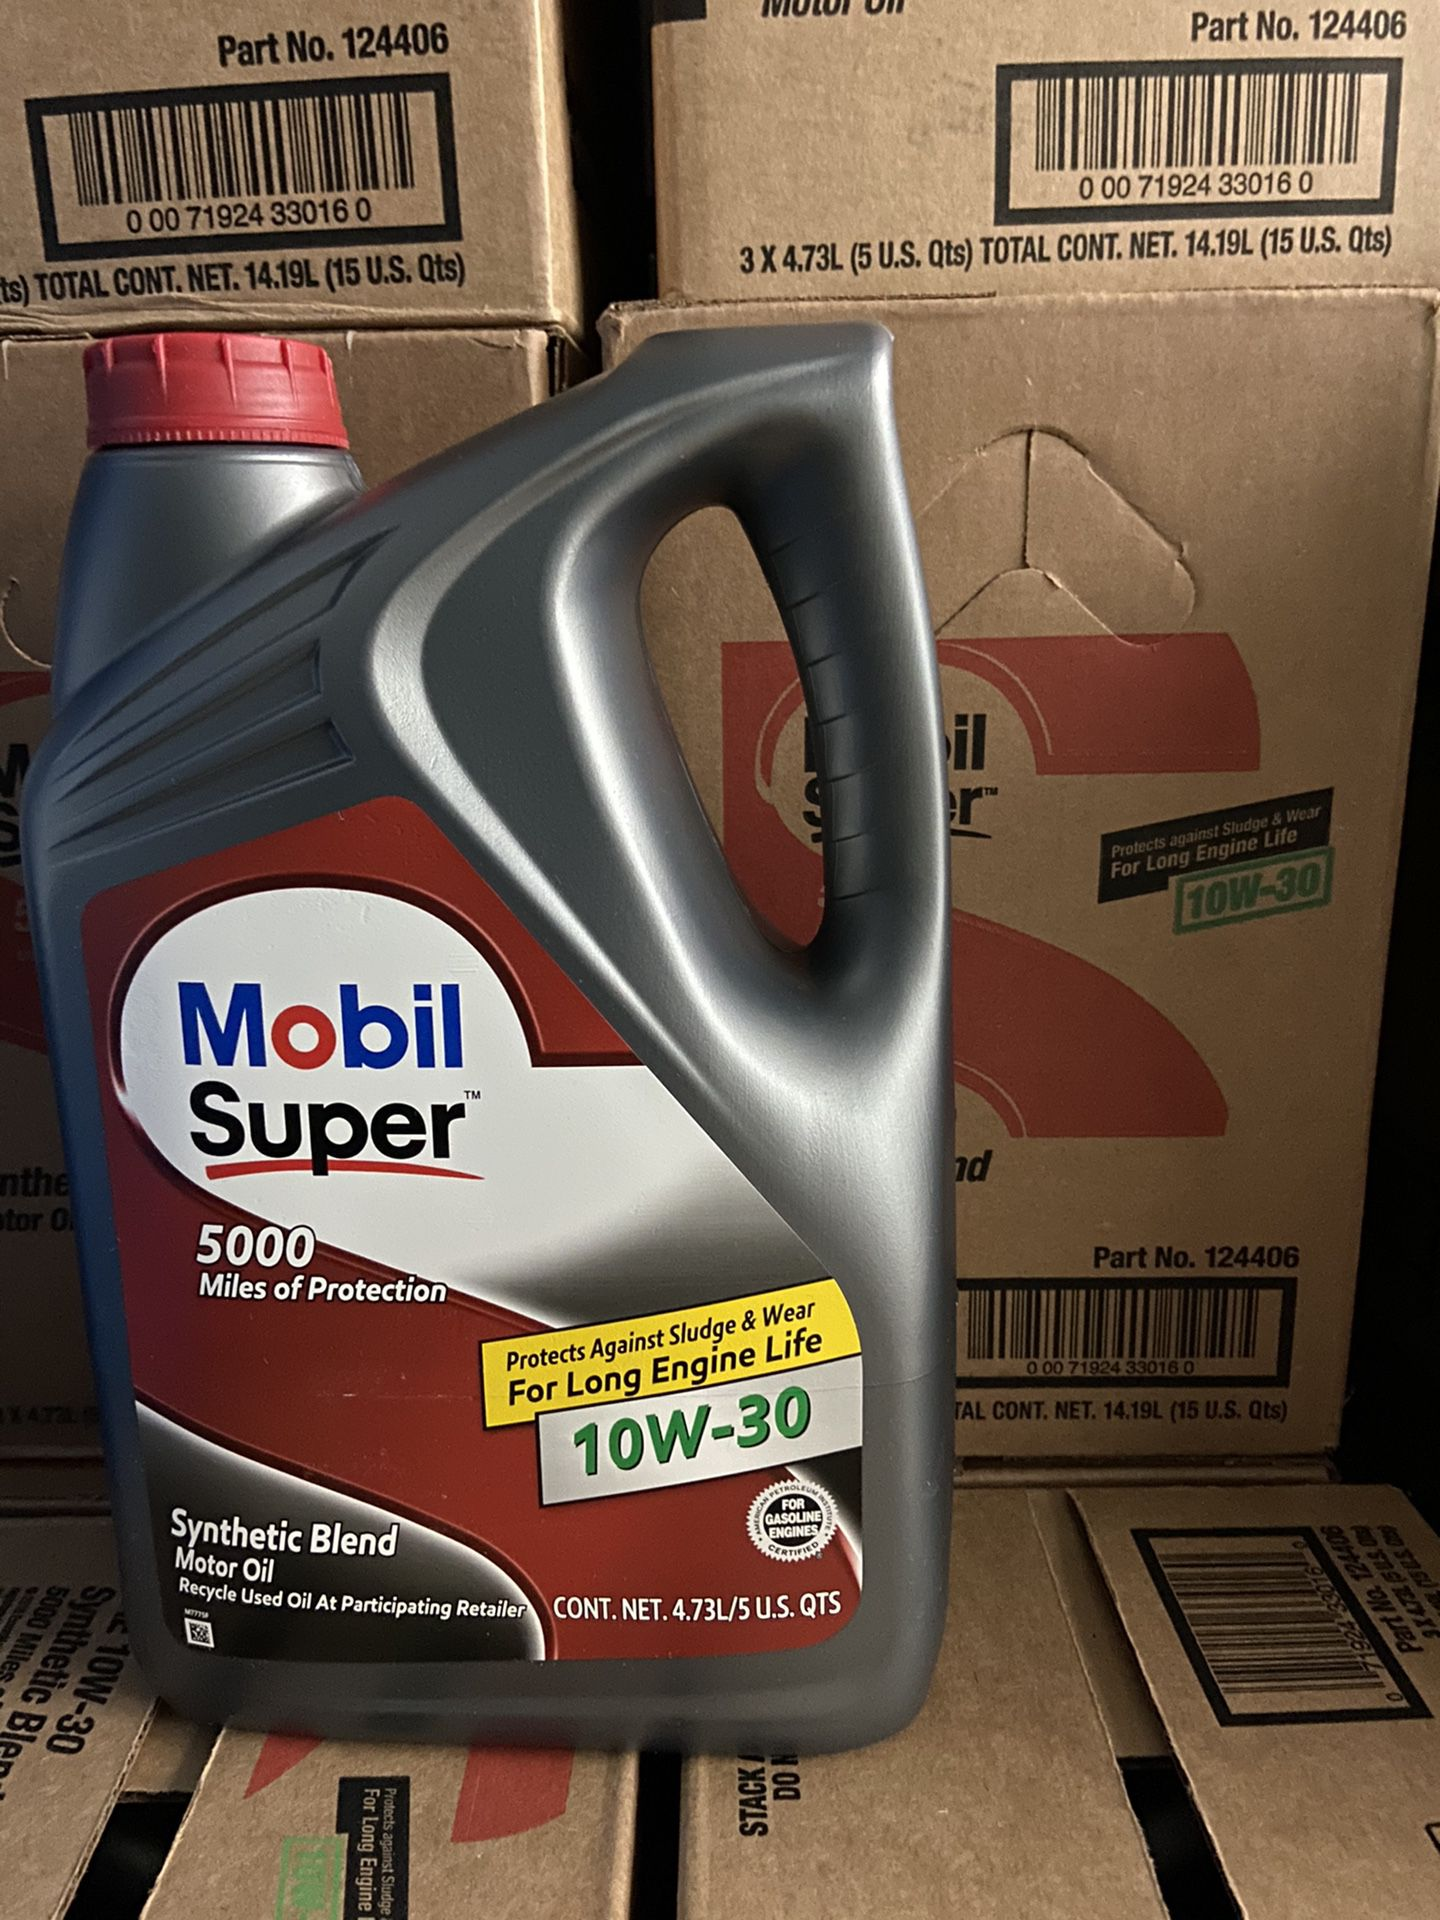 Aceite Mobil Súper 10w-30 Synthetic Blend Galon